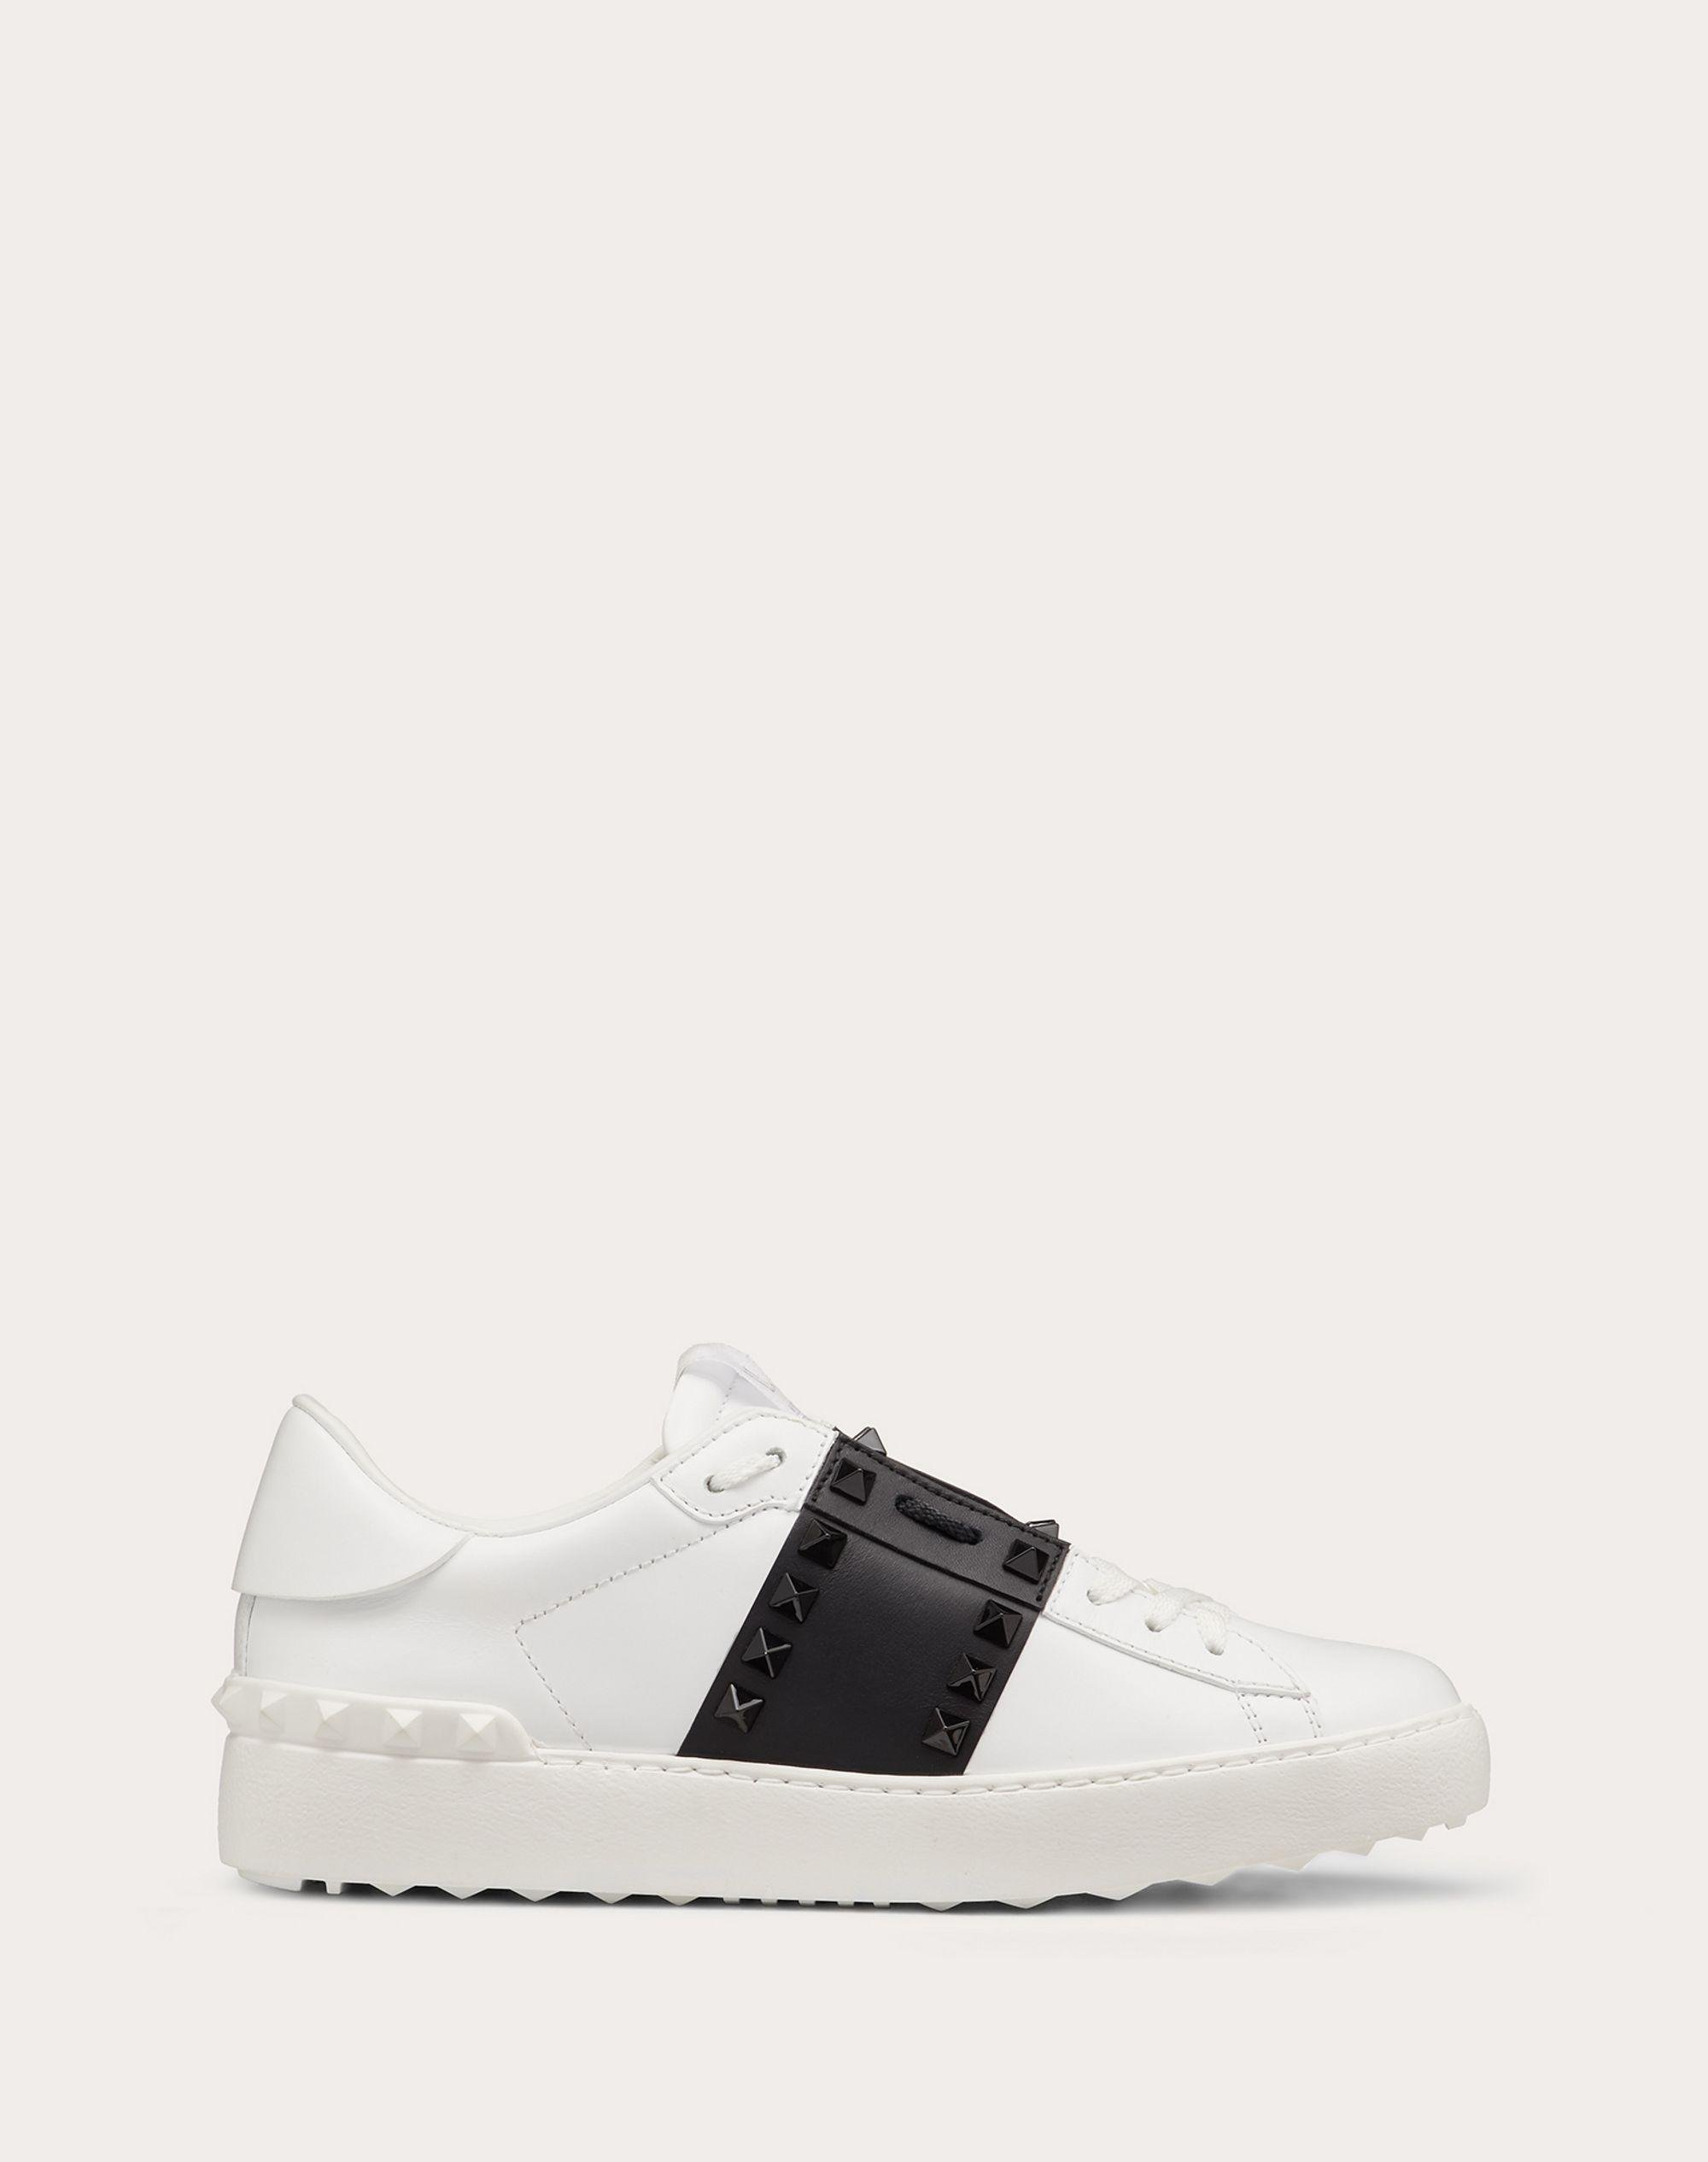 Rockstud Untitled Sneaker in Calfskin Leather with Tonal Studs